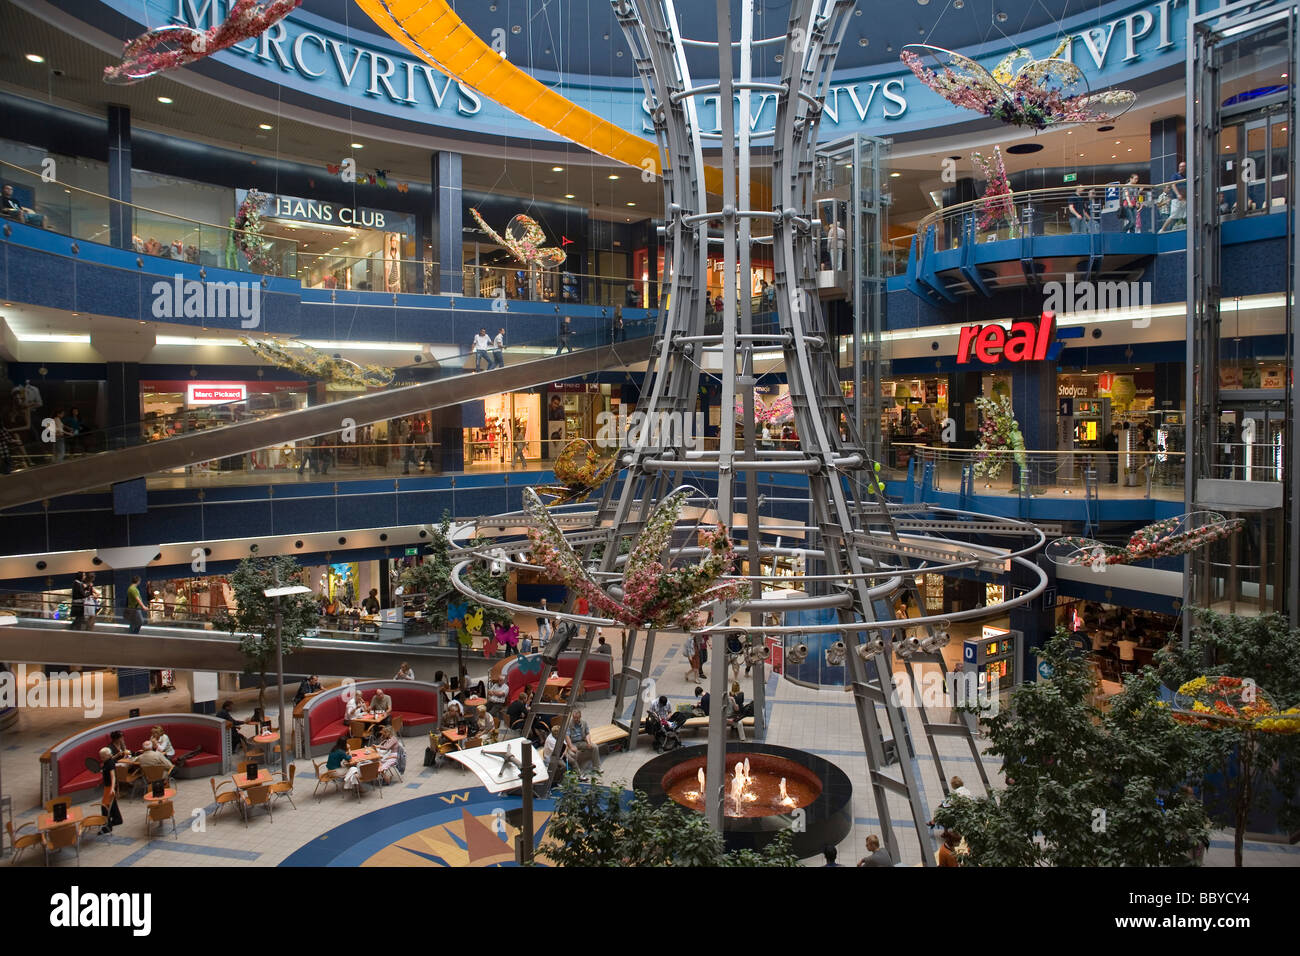 Poland Szczecin Pazim Shopping Centre Stock Photo Royalty Free Image 24574456 Alamy